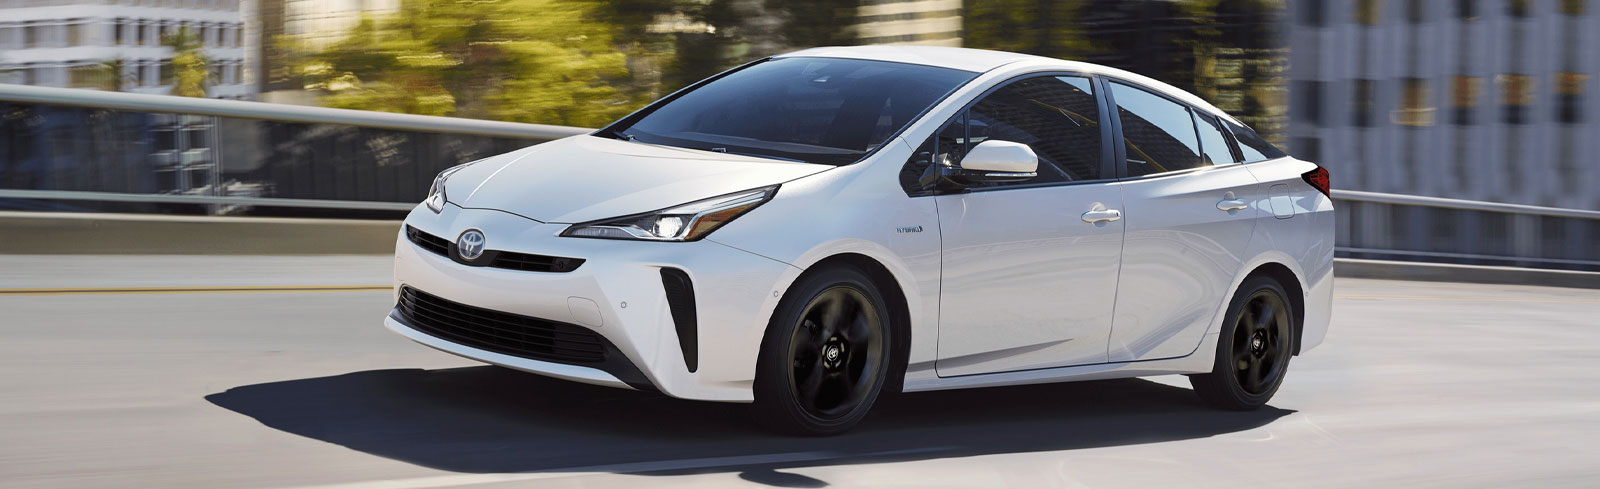 All New 2020 Toyota Prius for Sale at Future Toyota of Yuba City